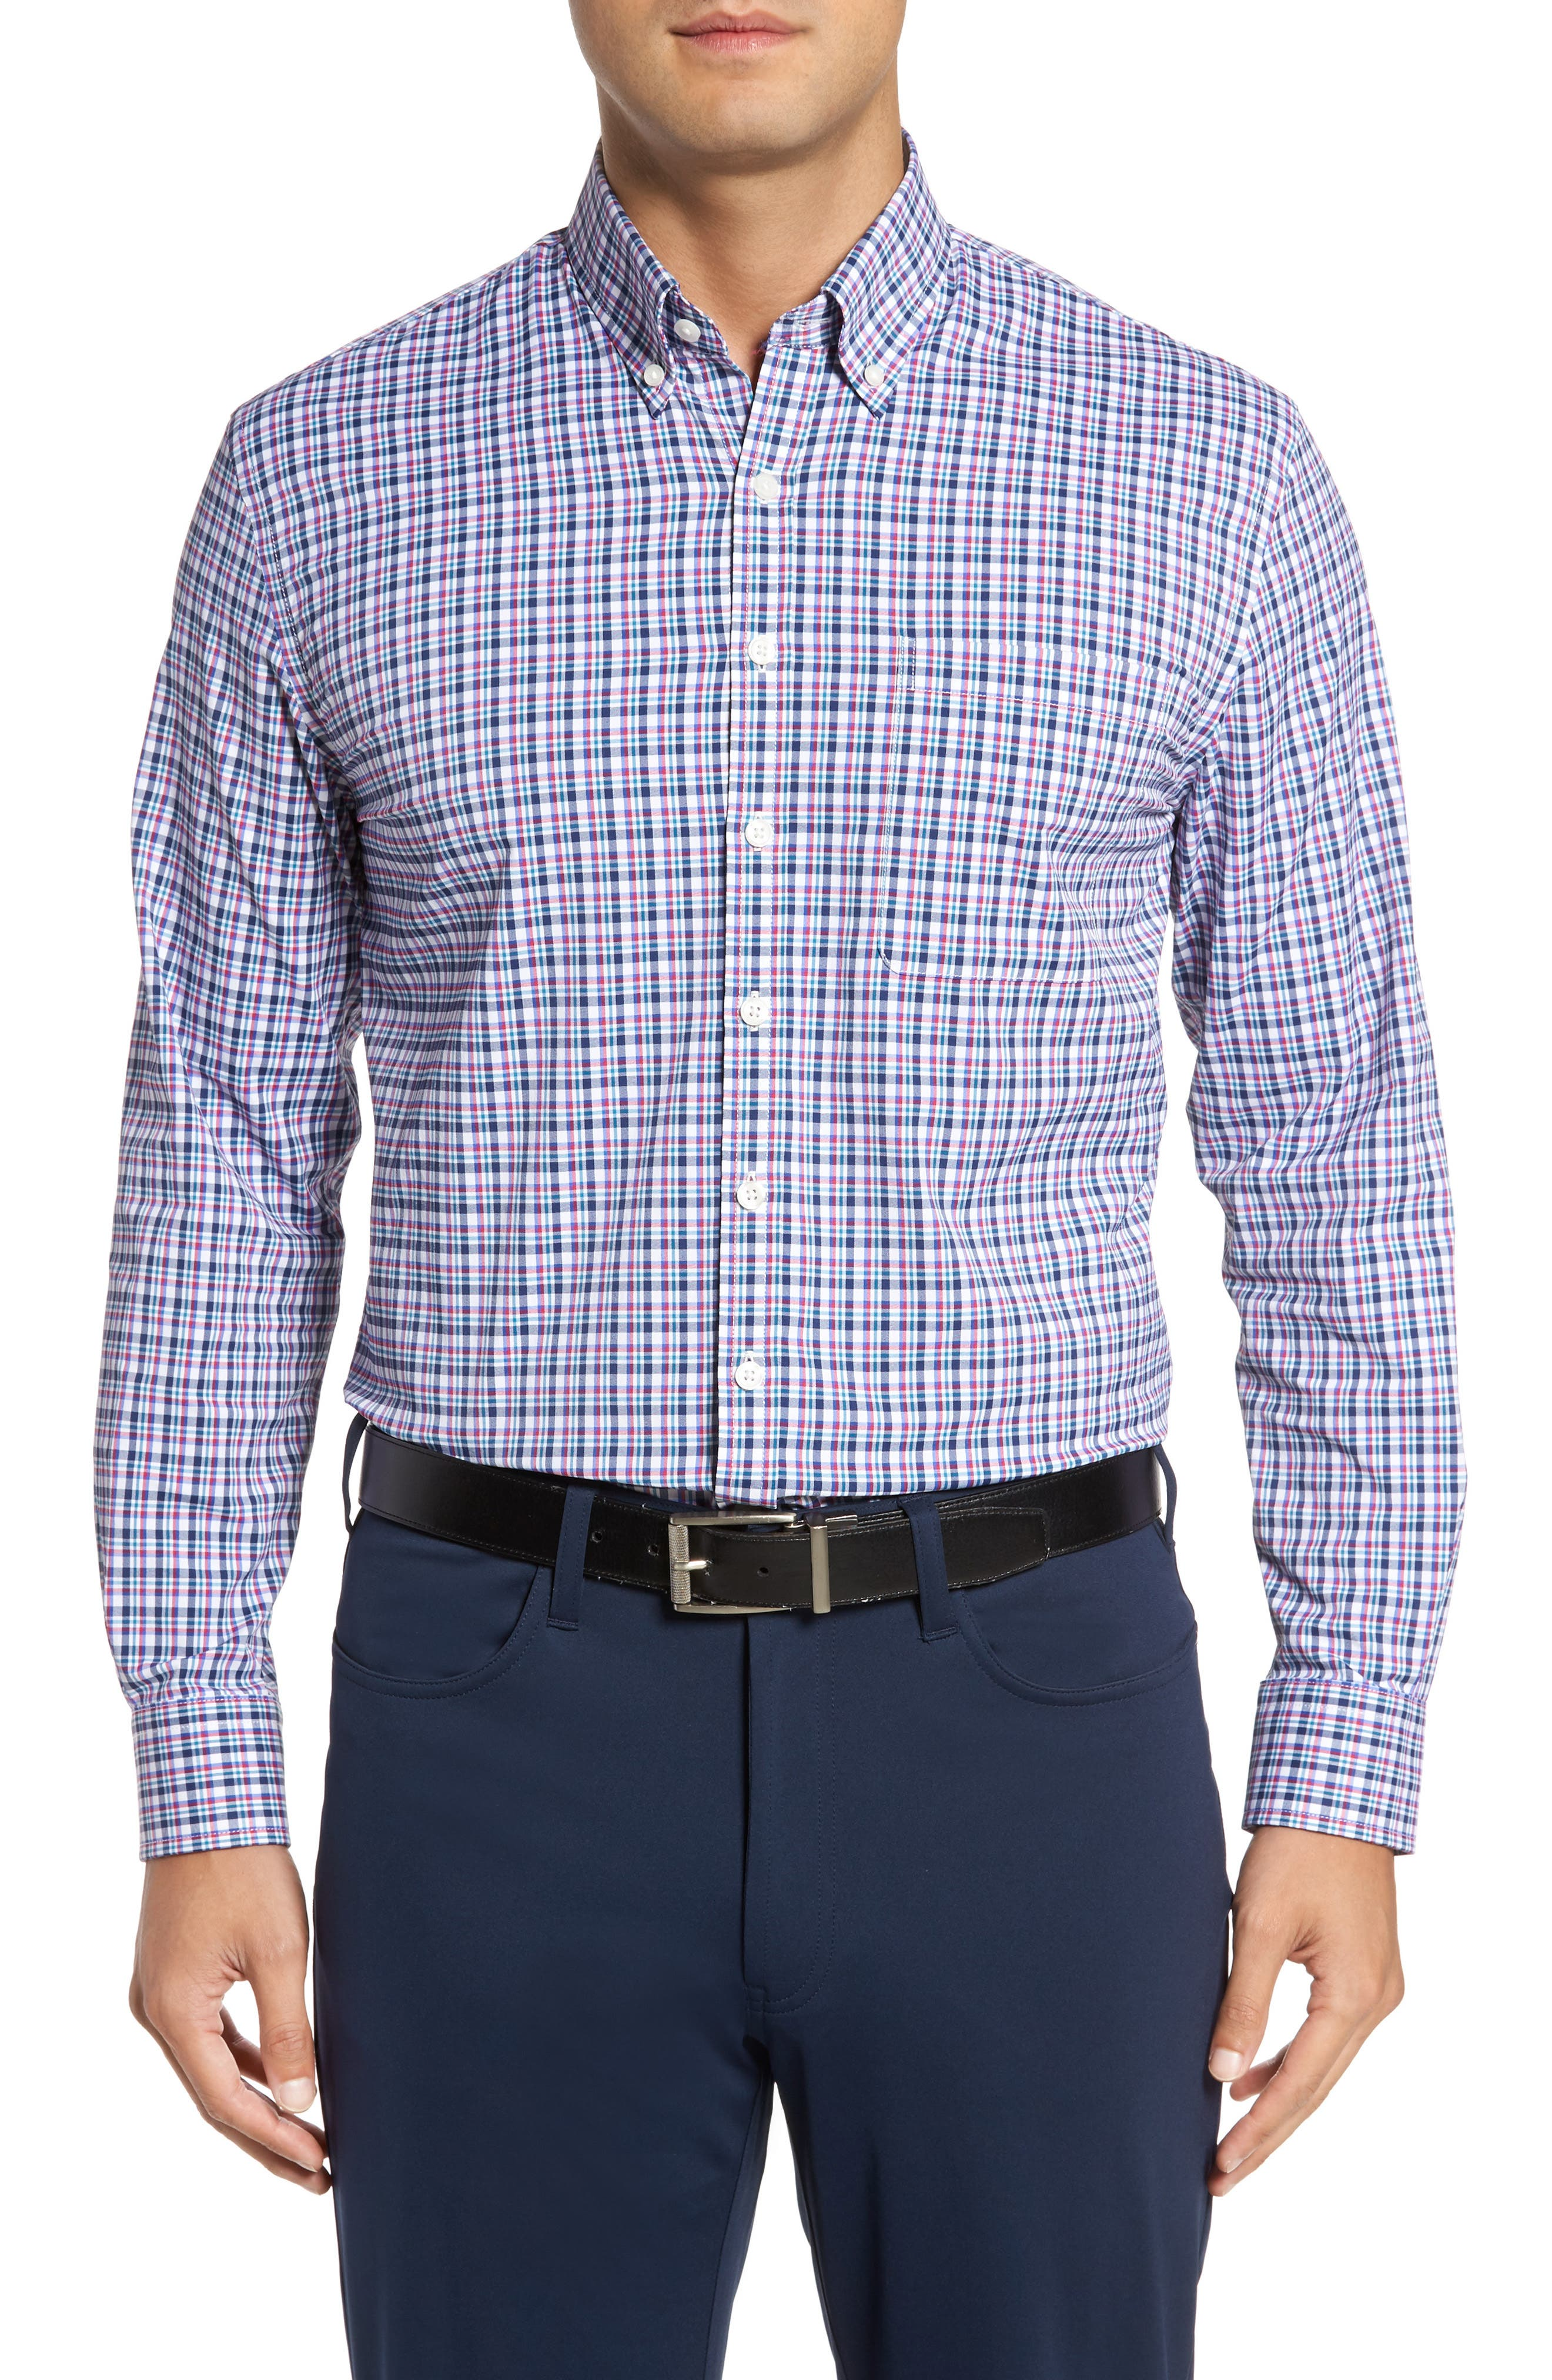 Main Image - Bobby Jones Matthers Easy Care Plaid Sport Shirt